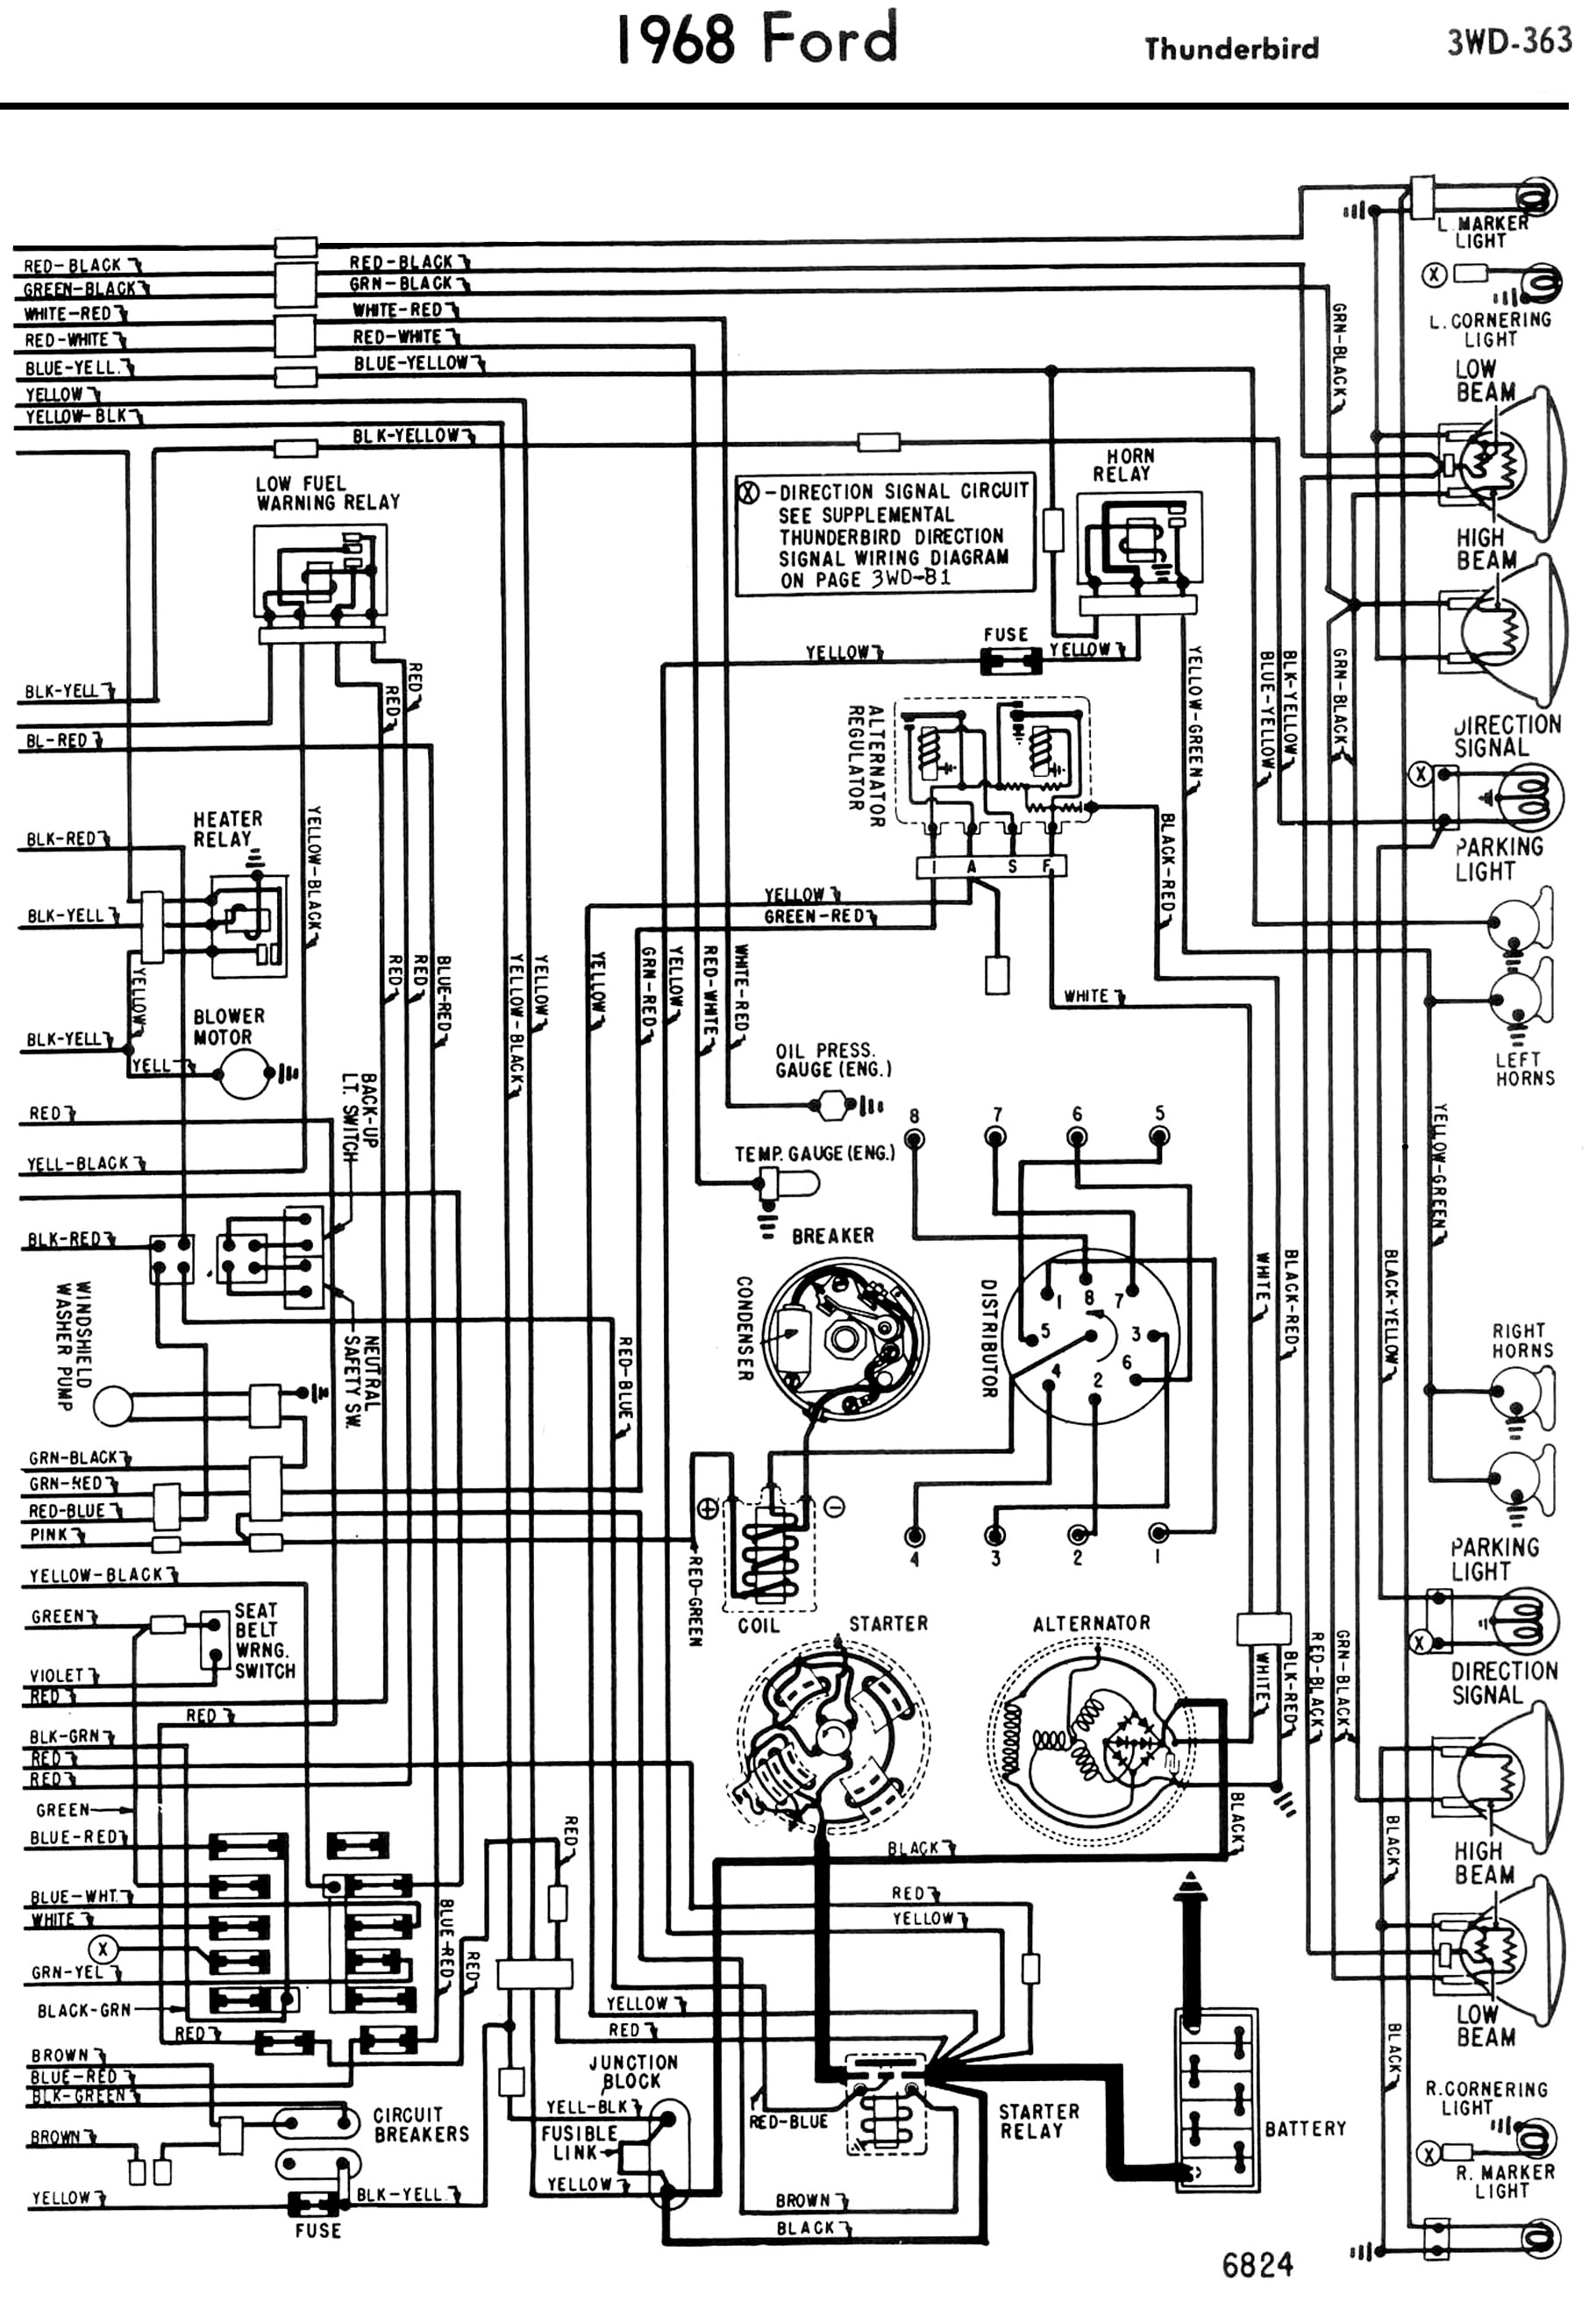 86 Thunderbird Ignition Wiring Diagram Wiring Diagram Selection Foot Selection Foot Zaafran It